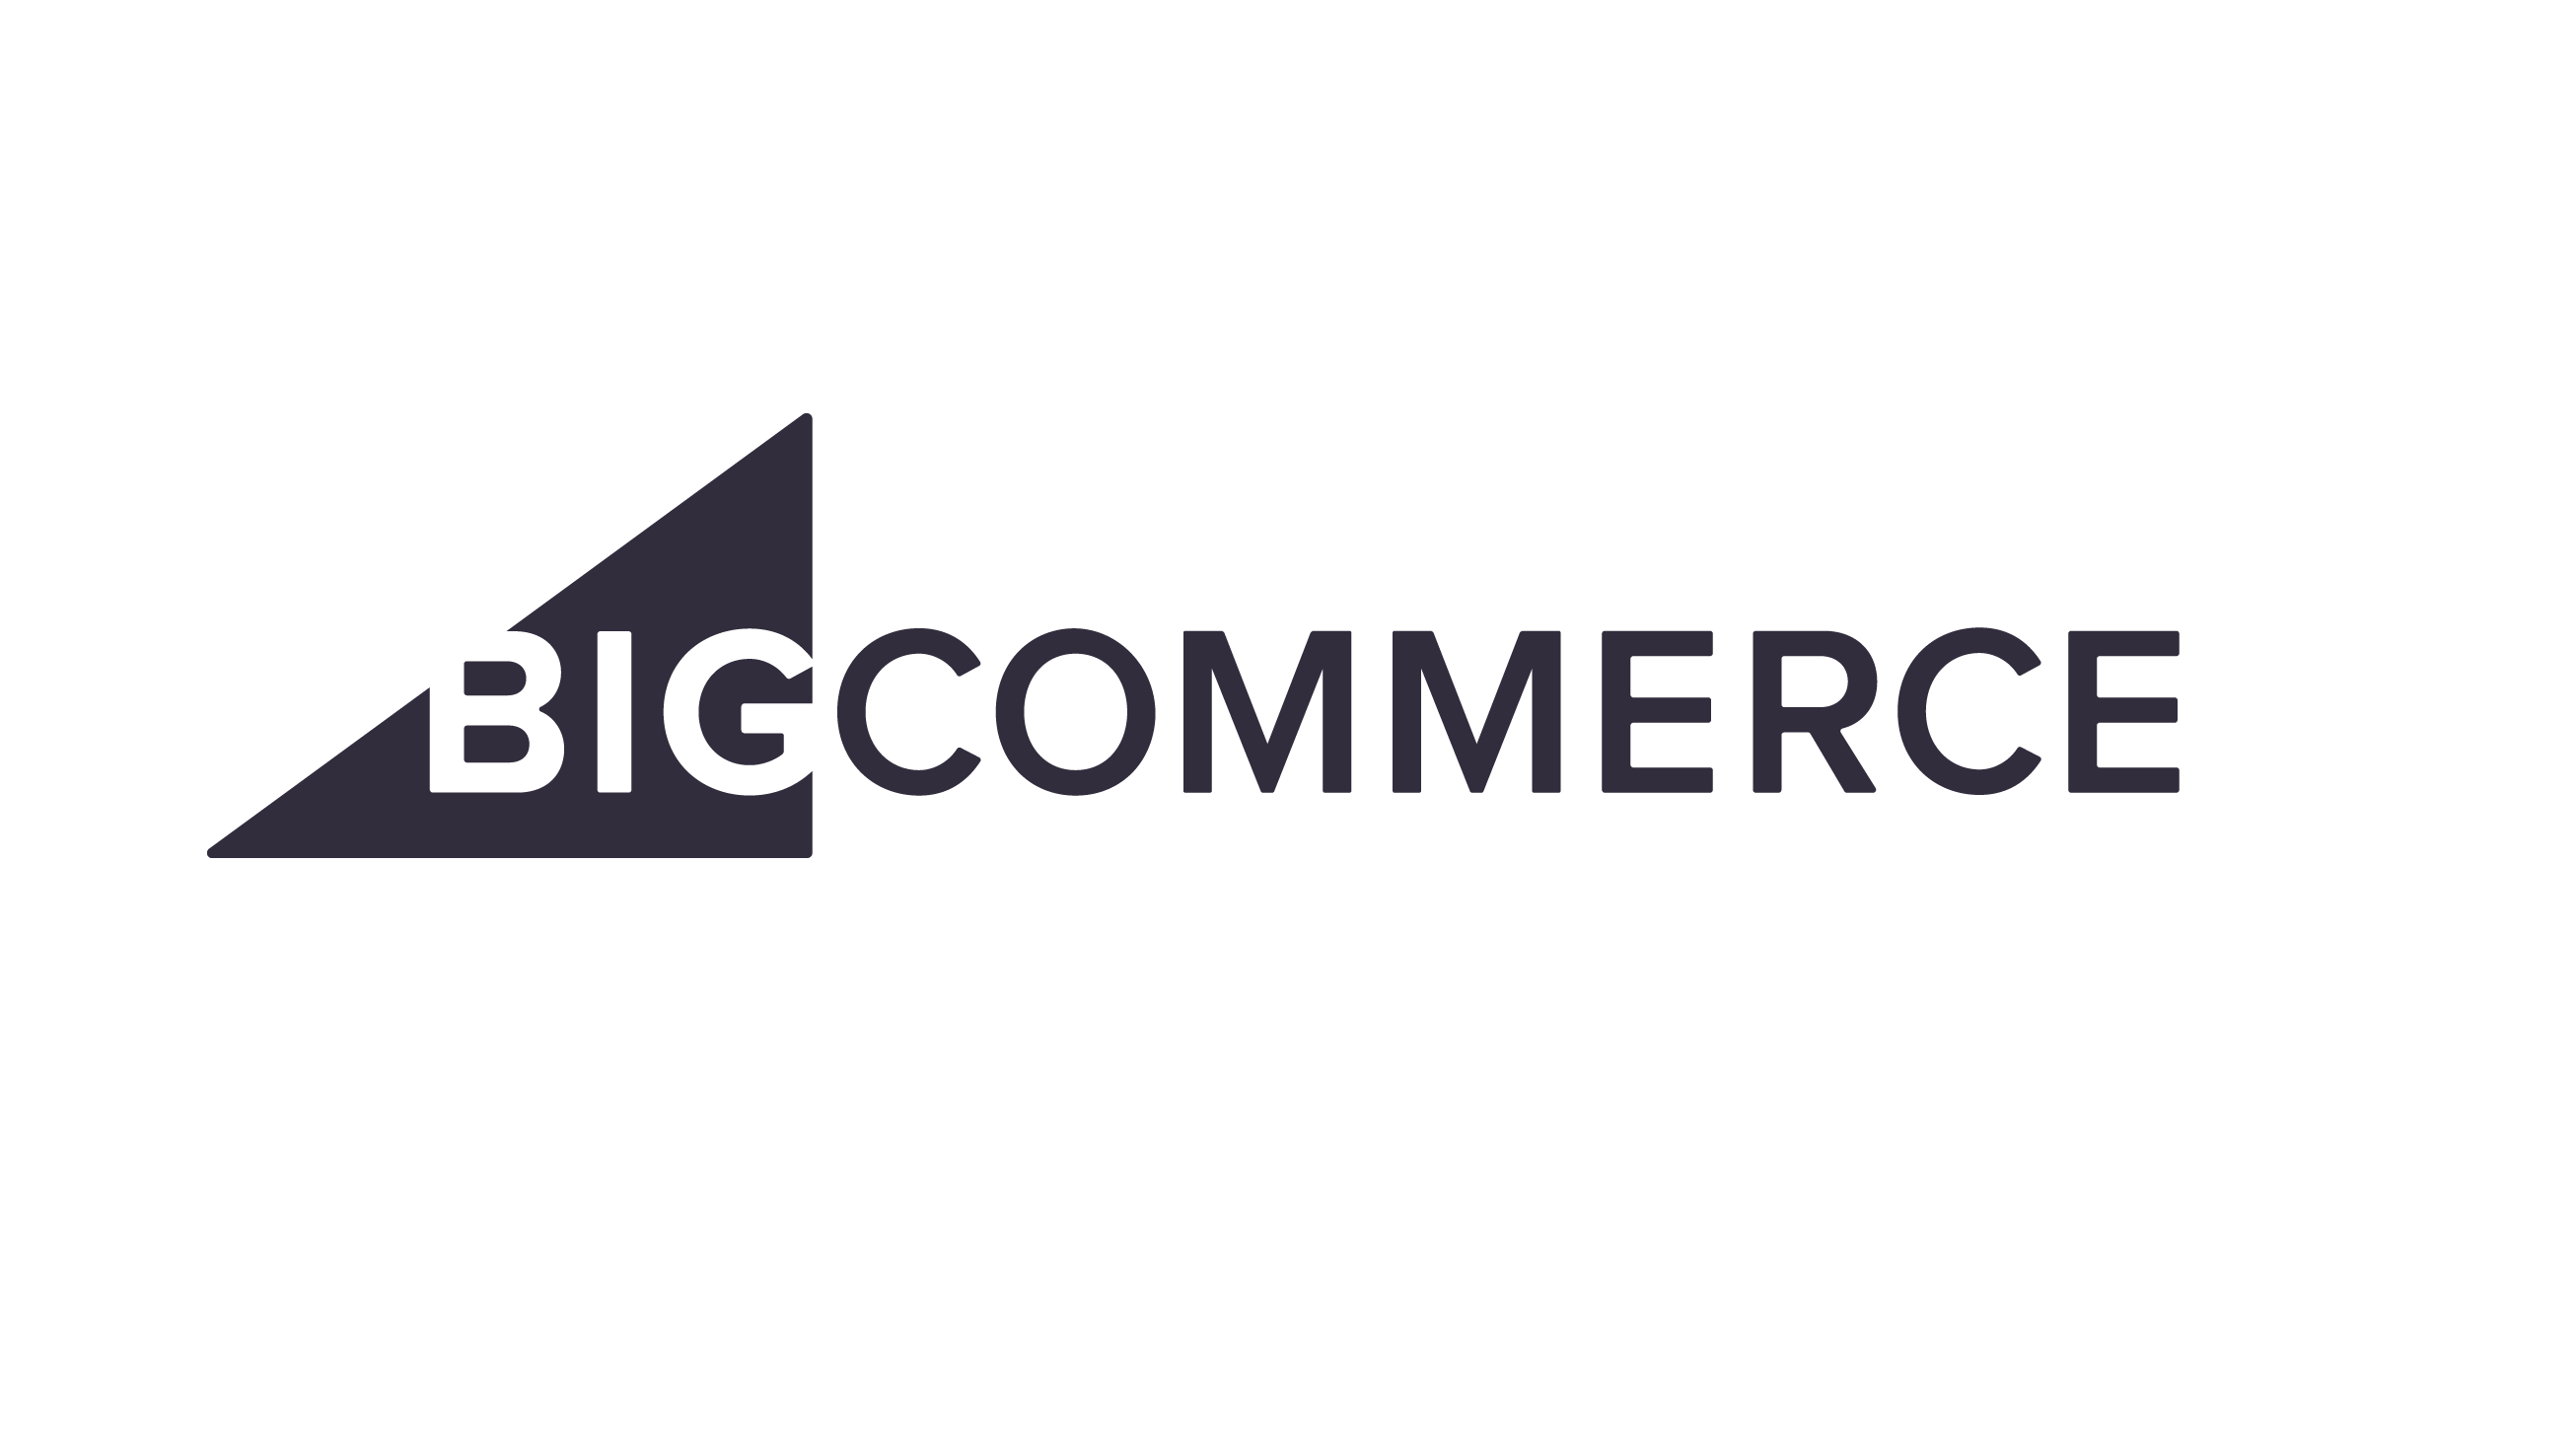 BigCommerce Expands into the Netherlands, France and Italy for Localised Ecommerce Experiences to Help Merchants Build, Run, and Grow a Better Online Business